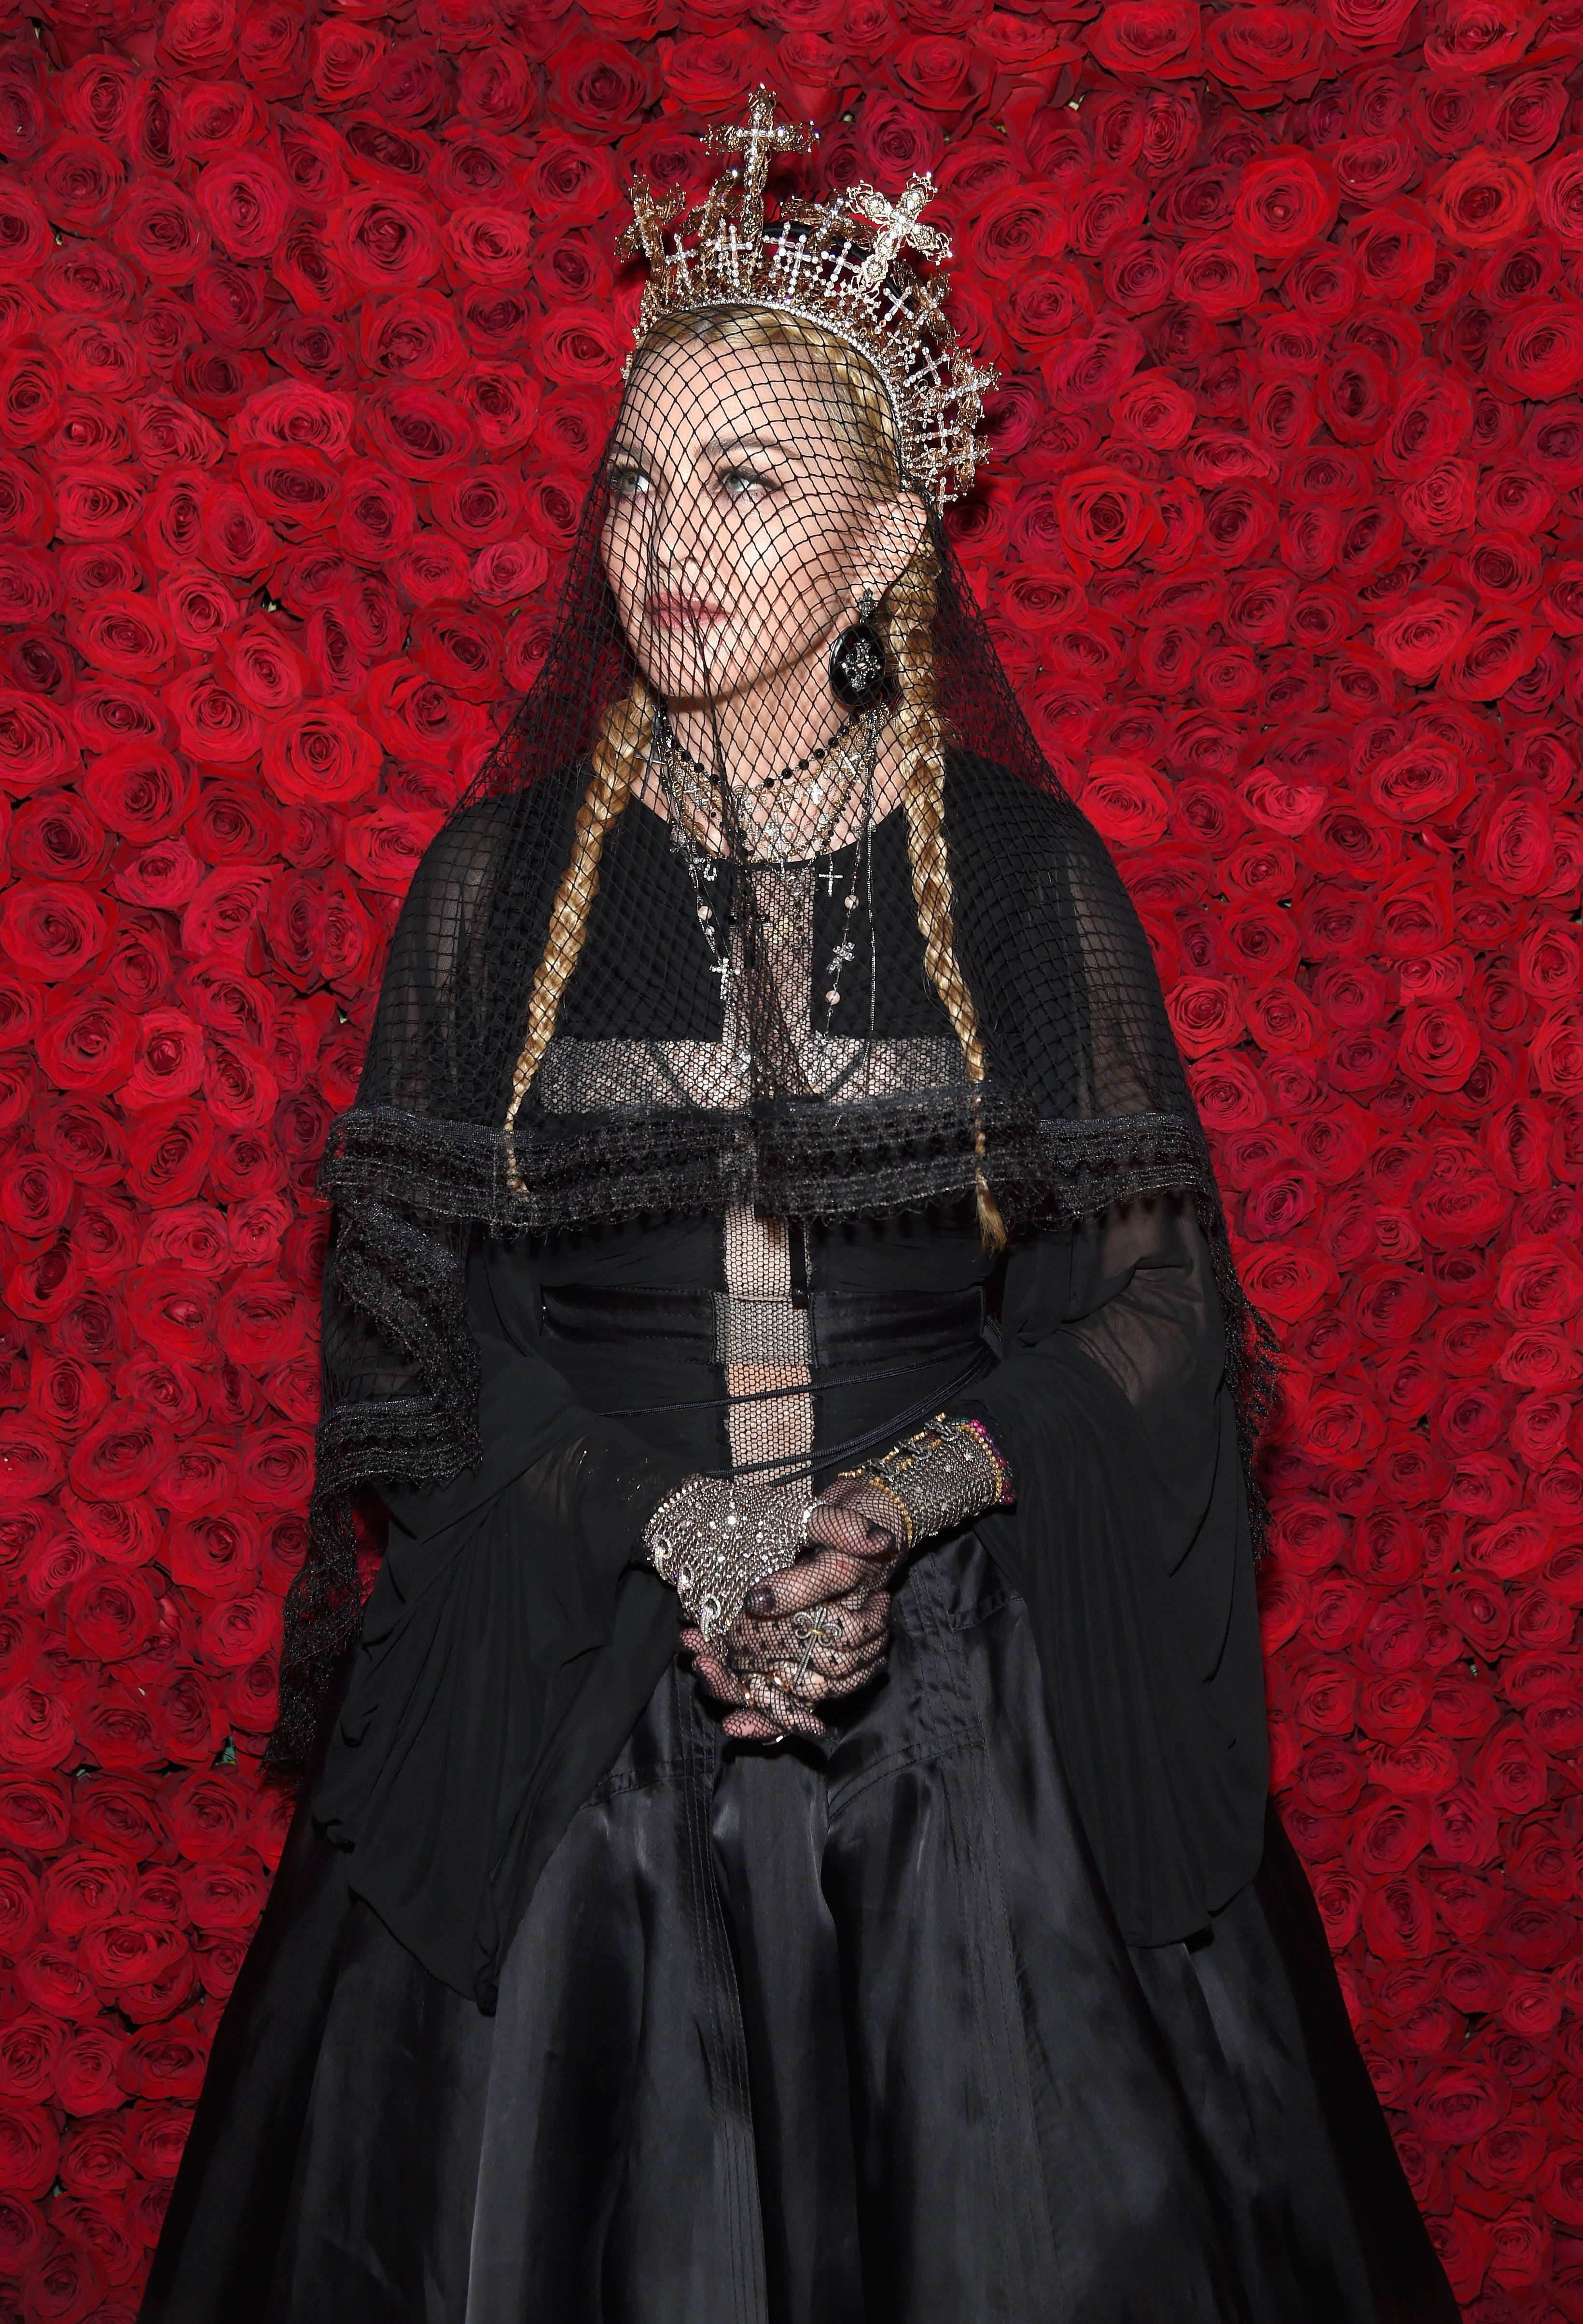 NEW YORK, NY - MAY 07:  Madonna attends the Heavenly Bodies: Fashion & The Catholic Imagination Costume Institute Gala at The Metropolitan Museum of Art on May 7, 2018 in New York City.  (Photo by Kevin Mazur/MG18/Getty Images for The Met Museum/Vogue)